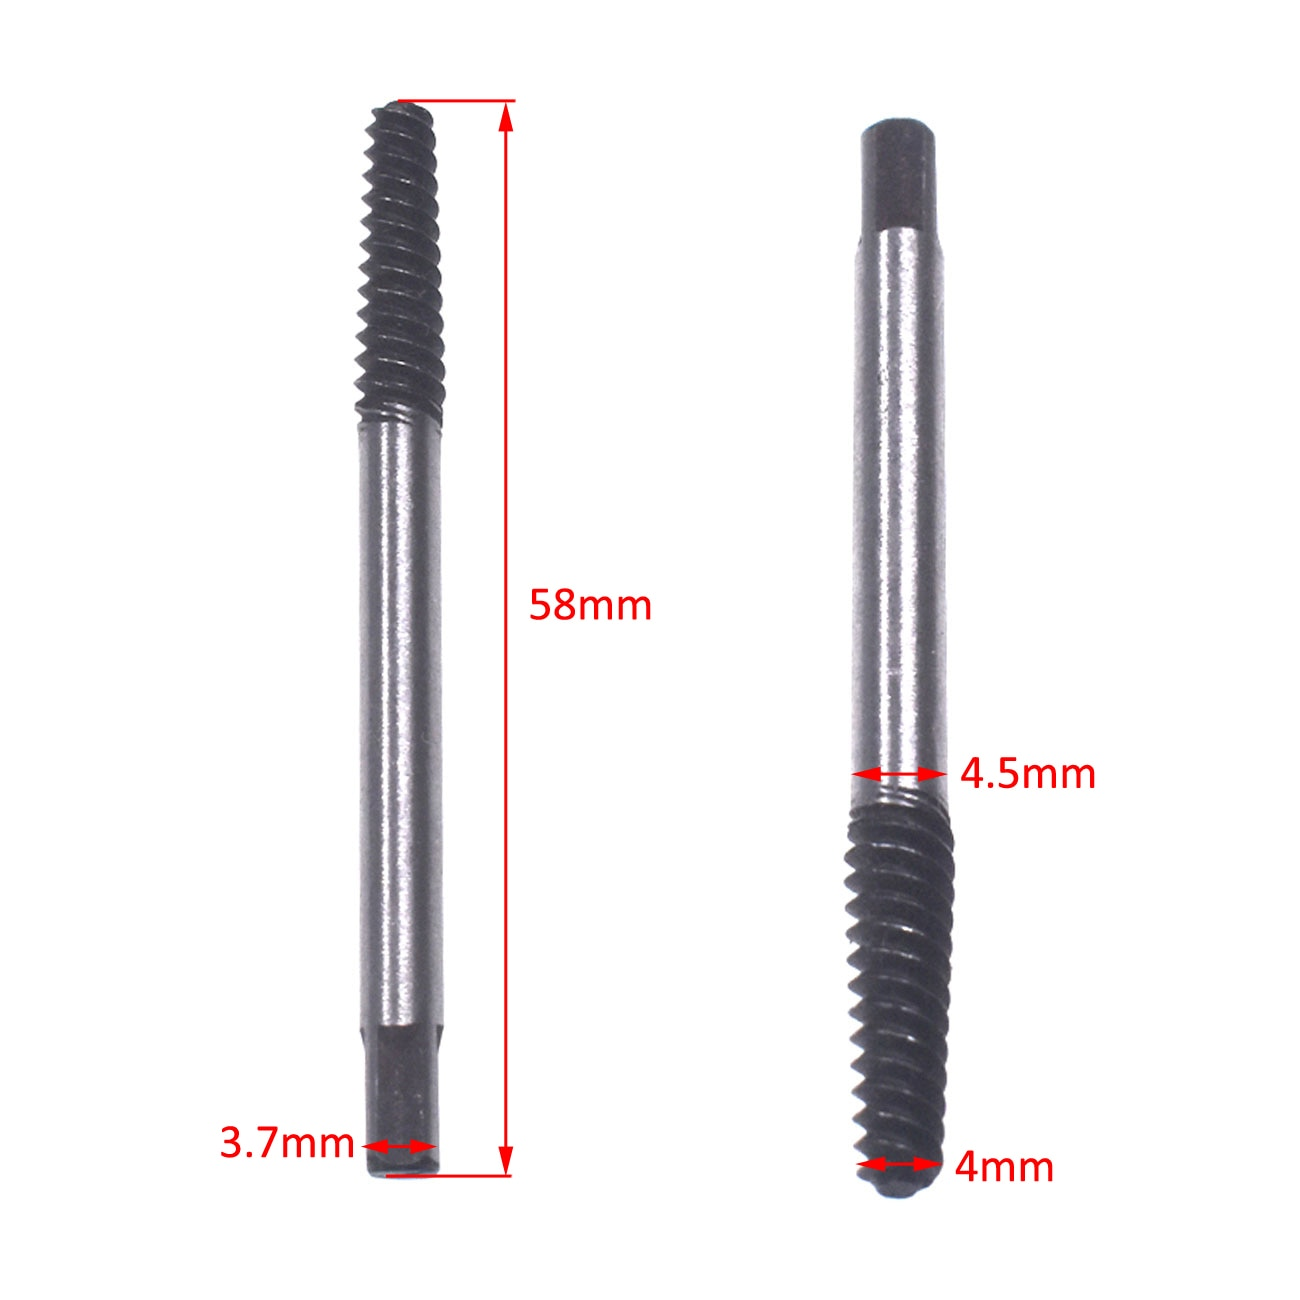 Pouvoir 3.7mm Screw Extractor Set Easy Out Drill Bits Guide Broken Screws Bolt Remover New enlarge